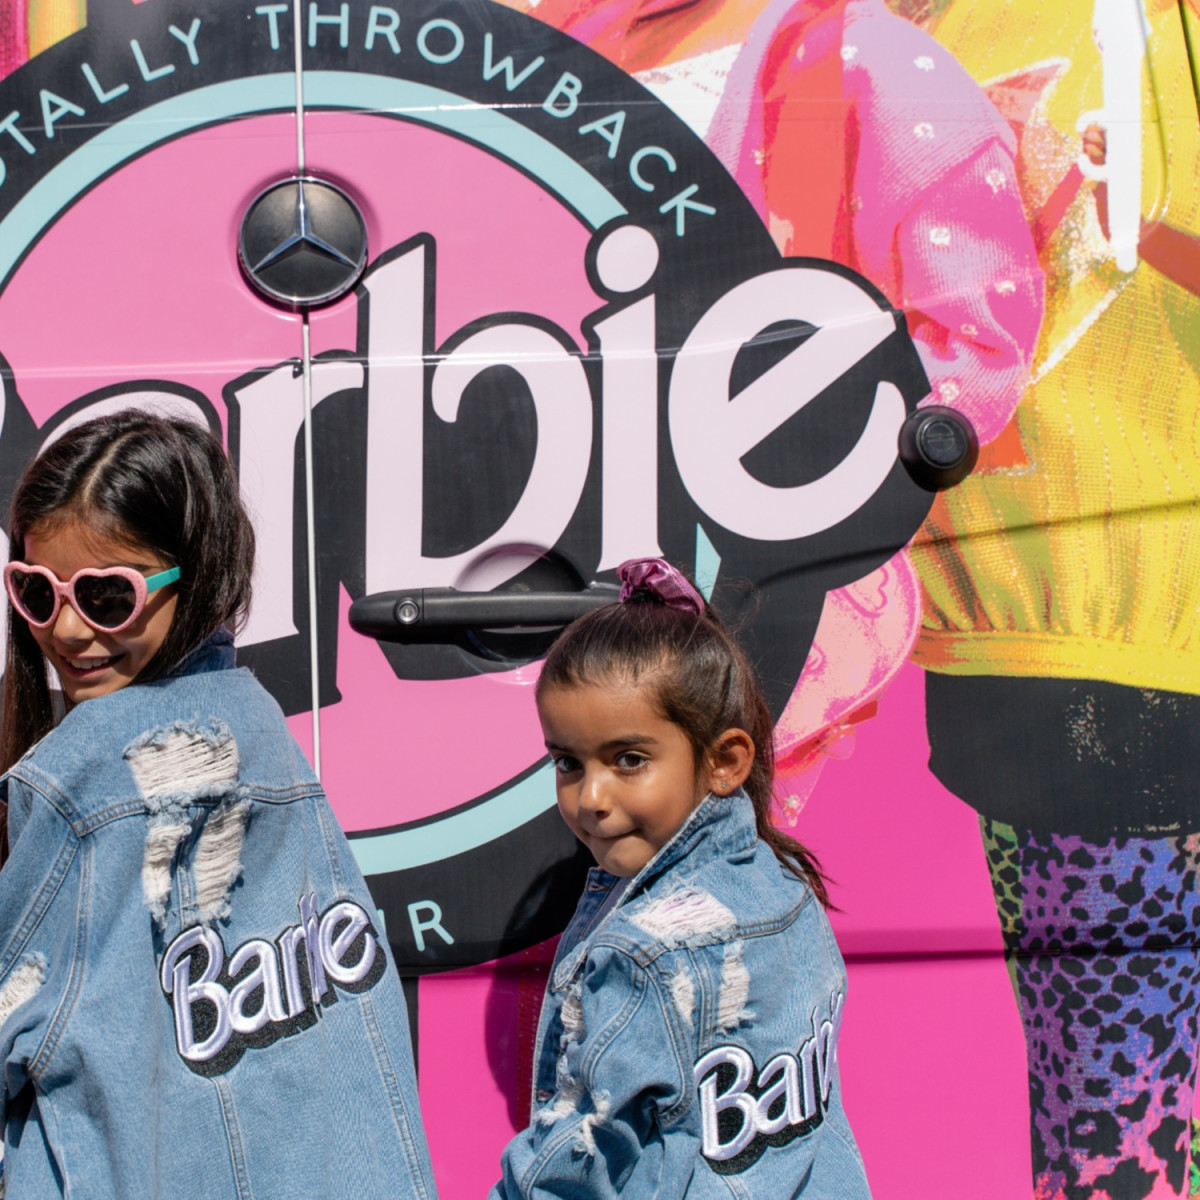 The Barbie Pop Up Truck presents Totally Throwback Tour